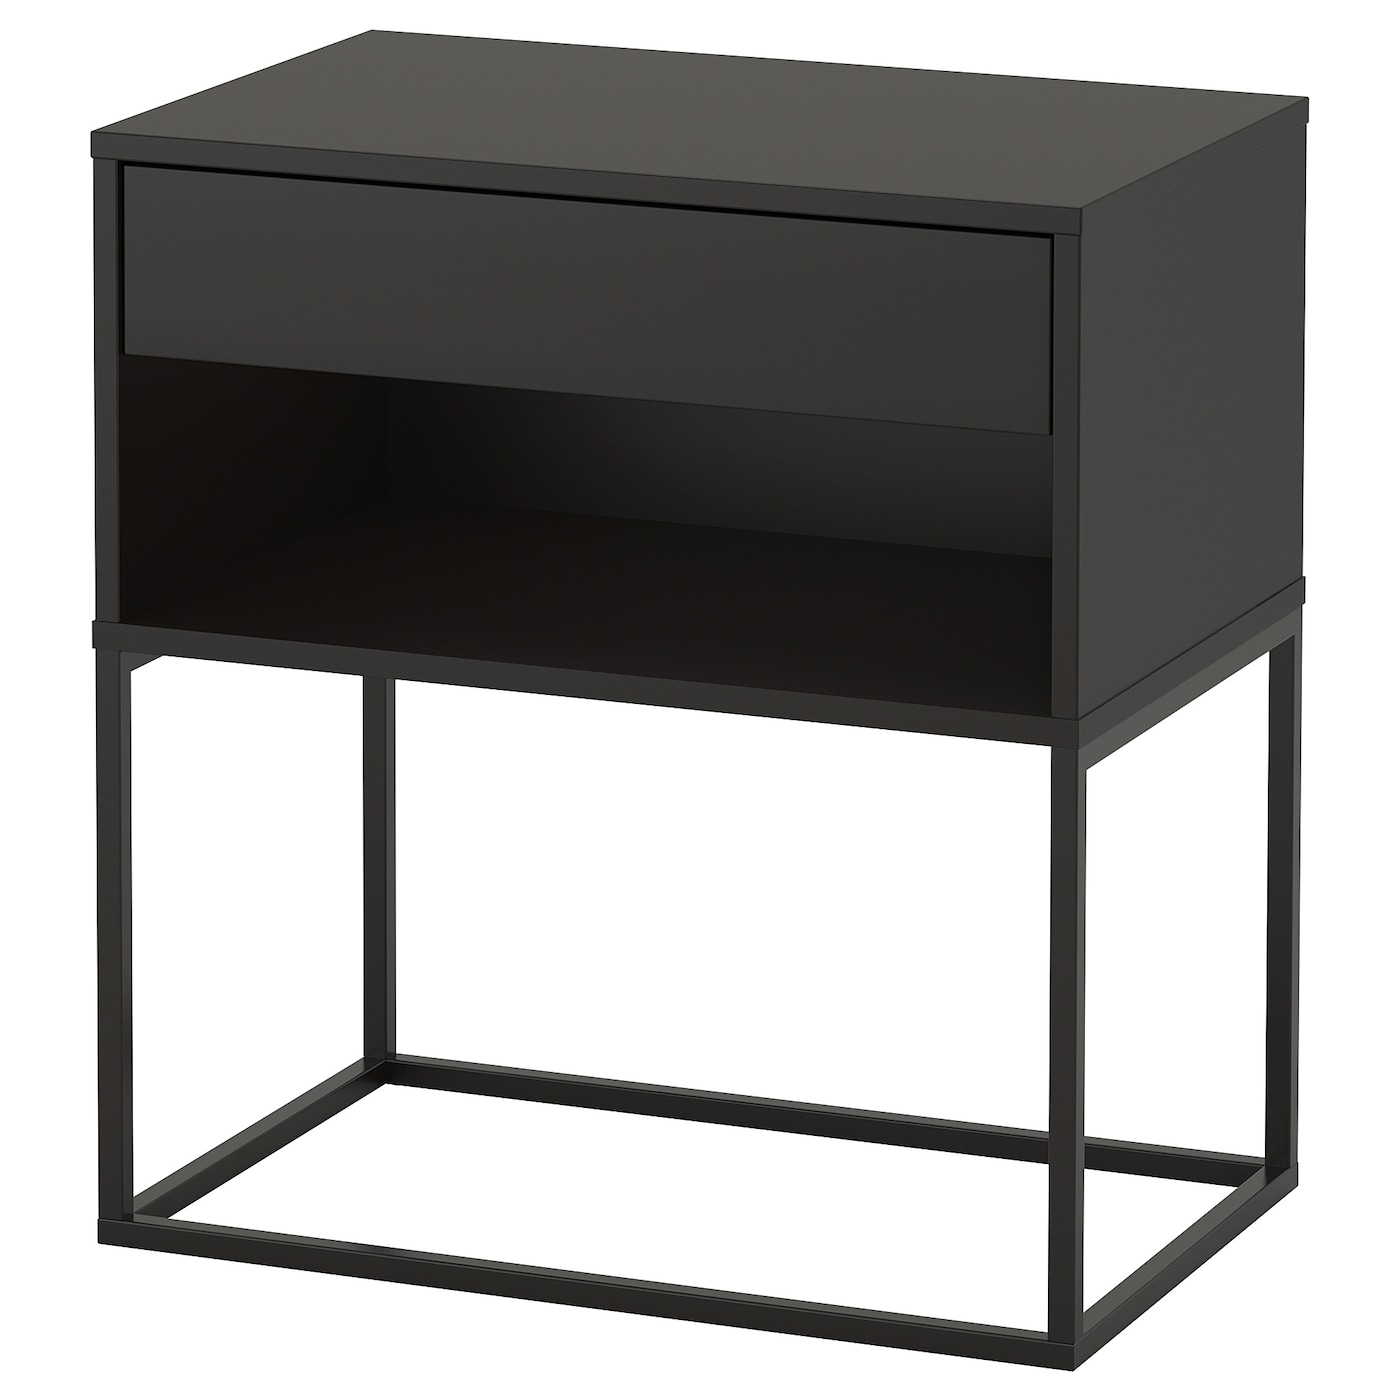 bedside tables bedside cabinets ikea. Black Bedroom Furniture Sets. Home Design Ideas